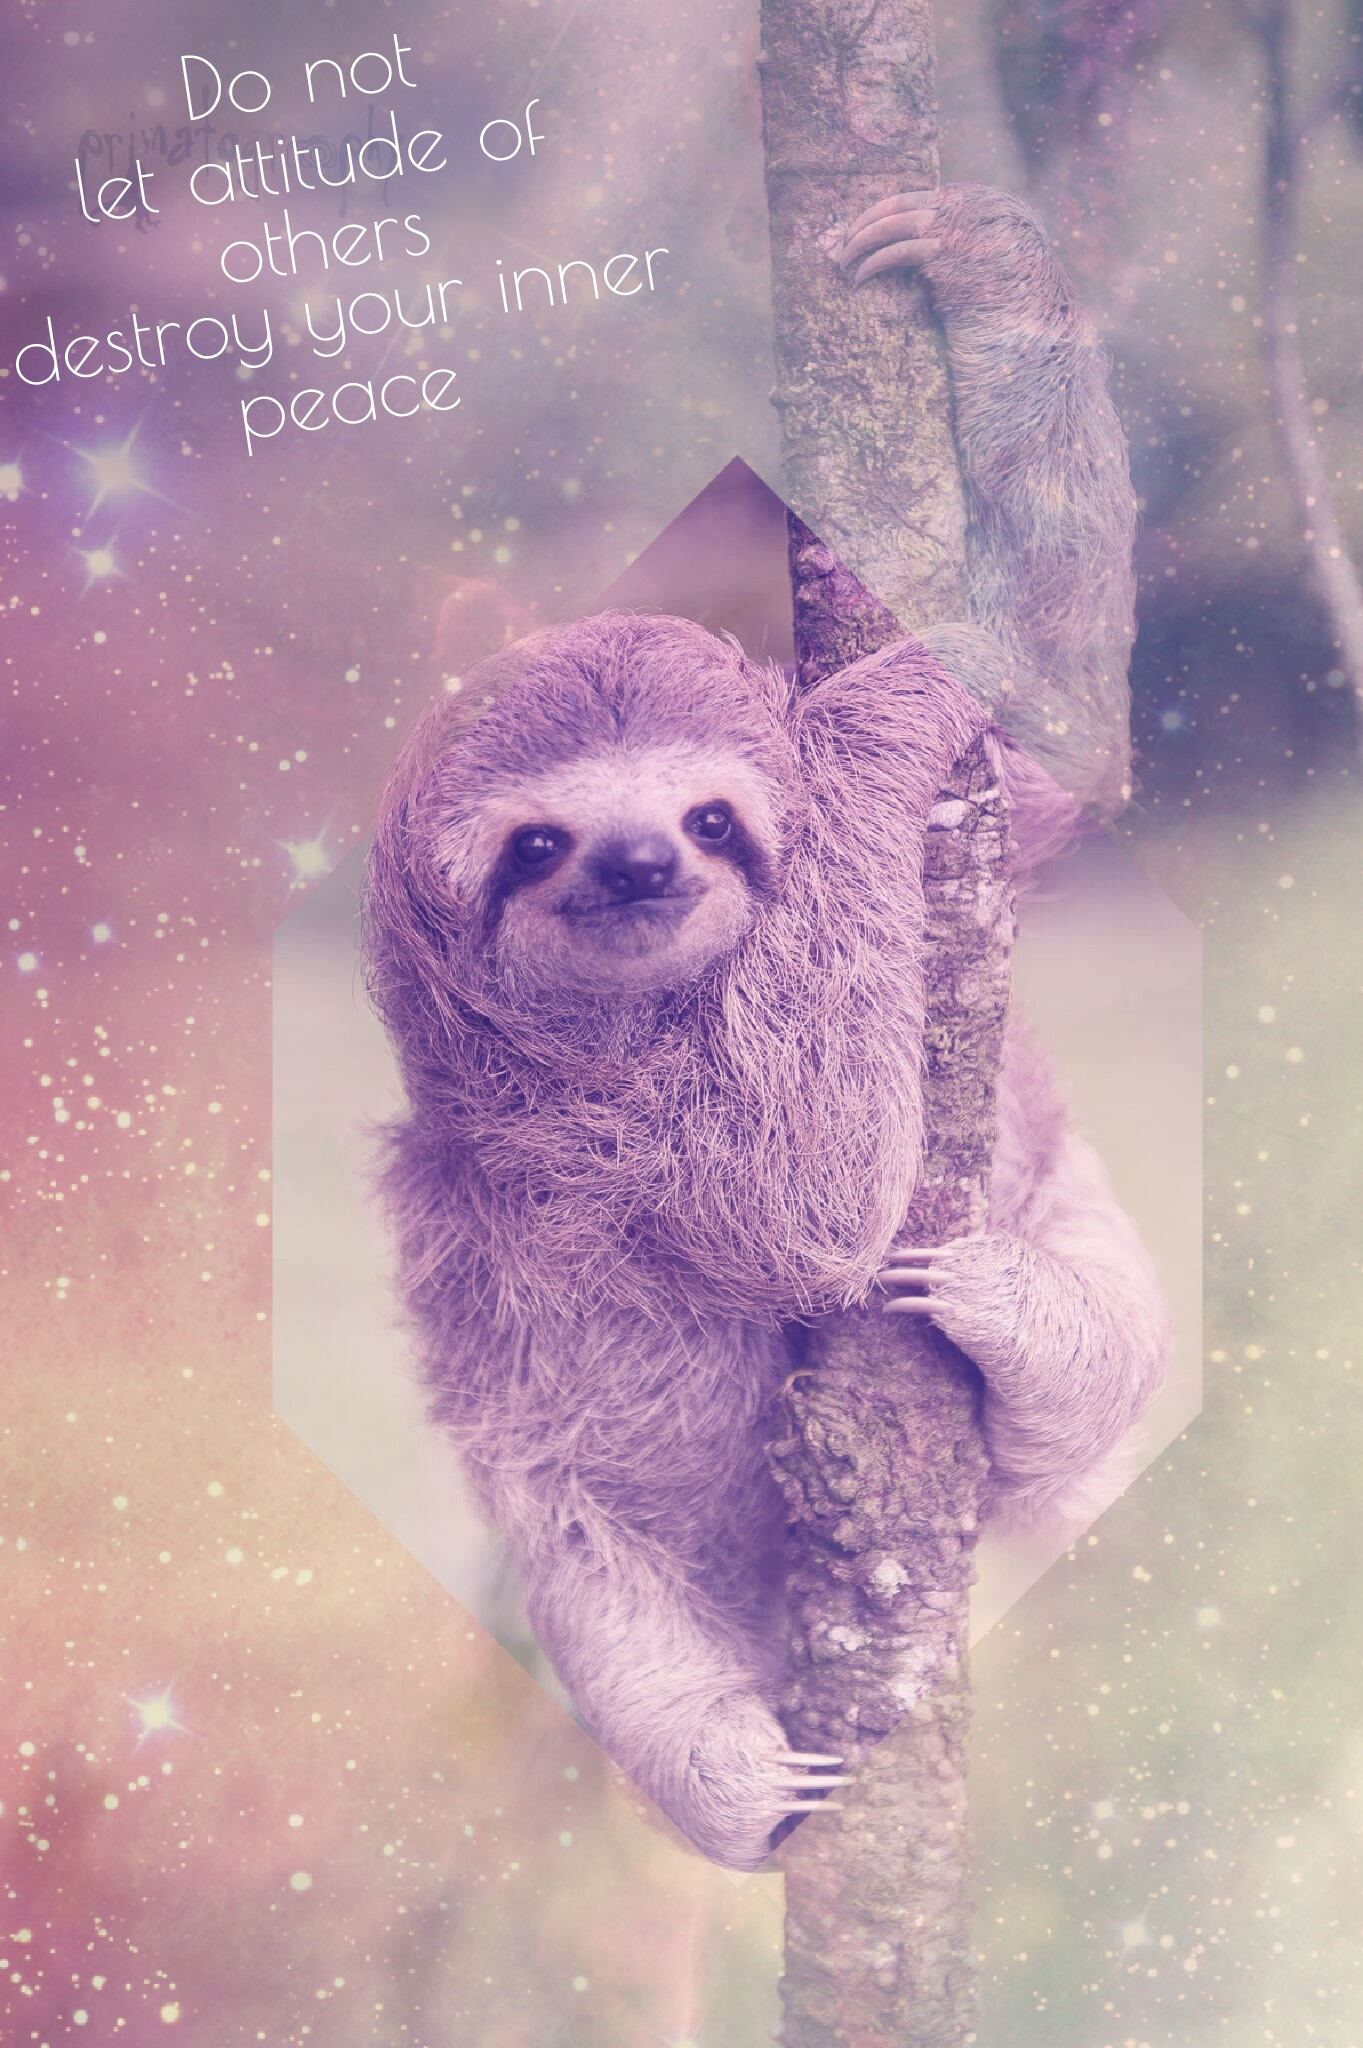 Cute Baby Wallpaper Apps Wallpaper Wallpapers Colorful Sloth Sloths Slothwallpap